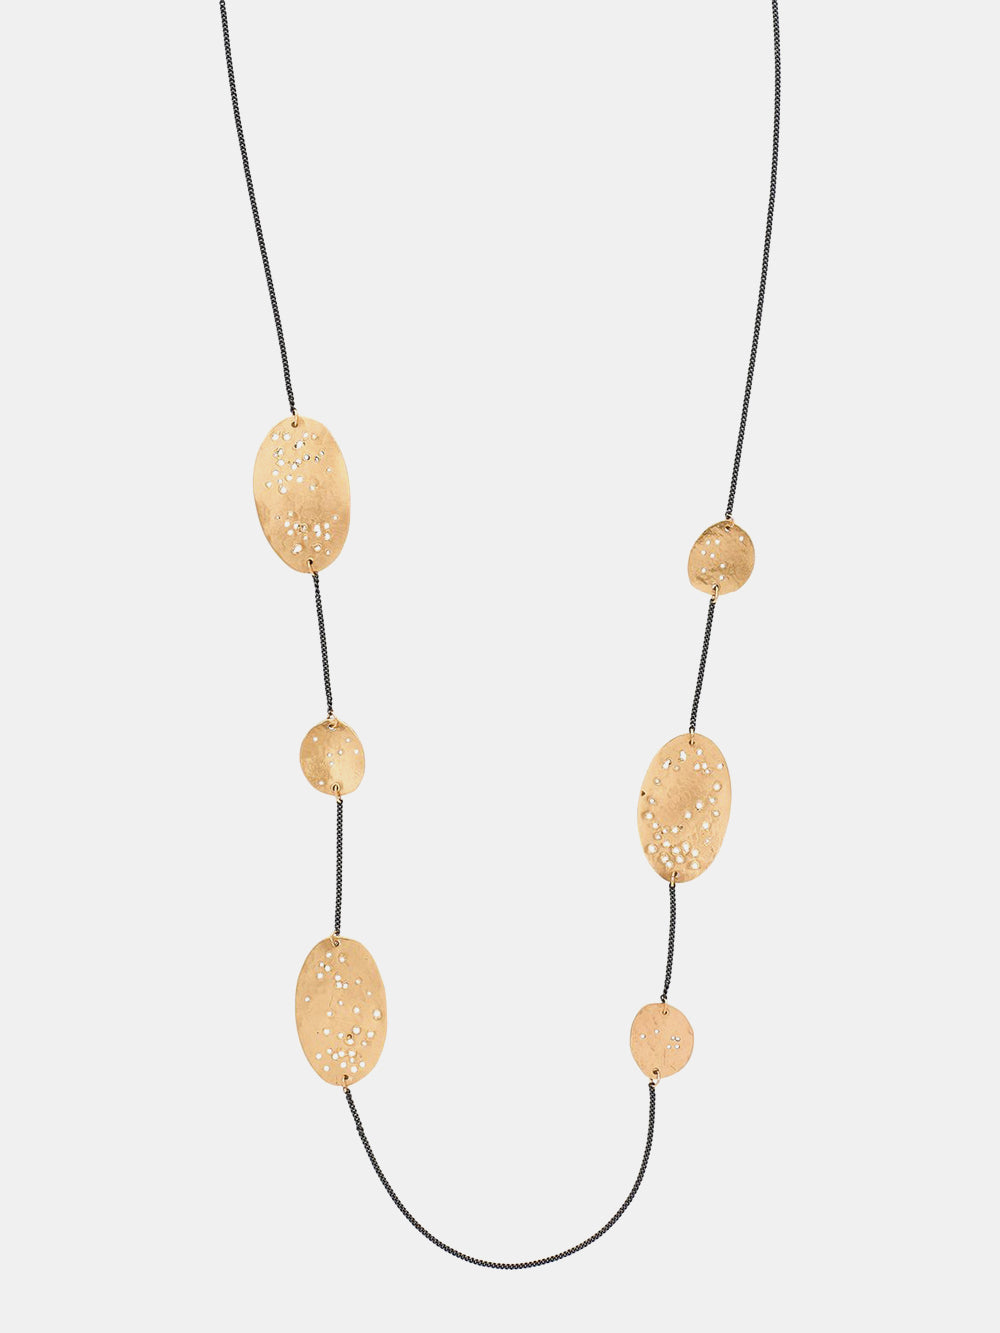 julie cohn lucio necklace